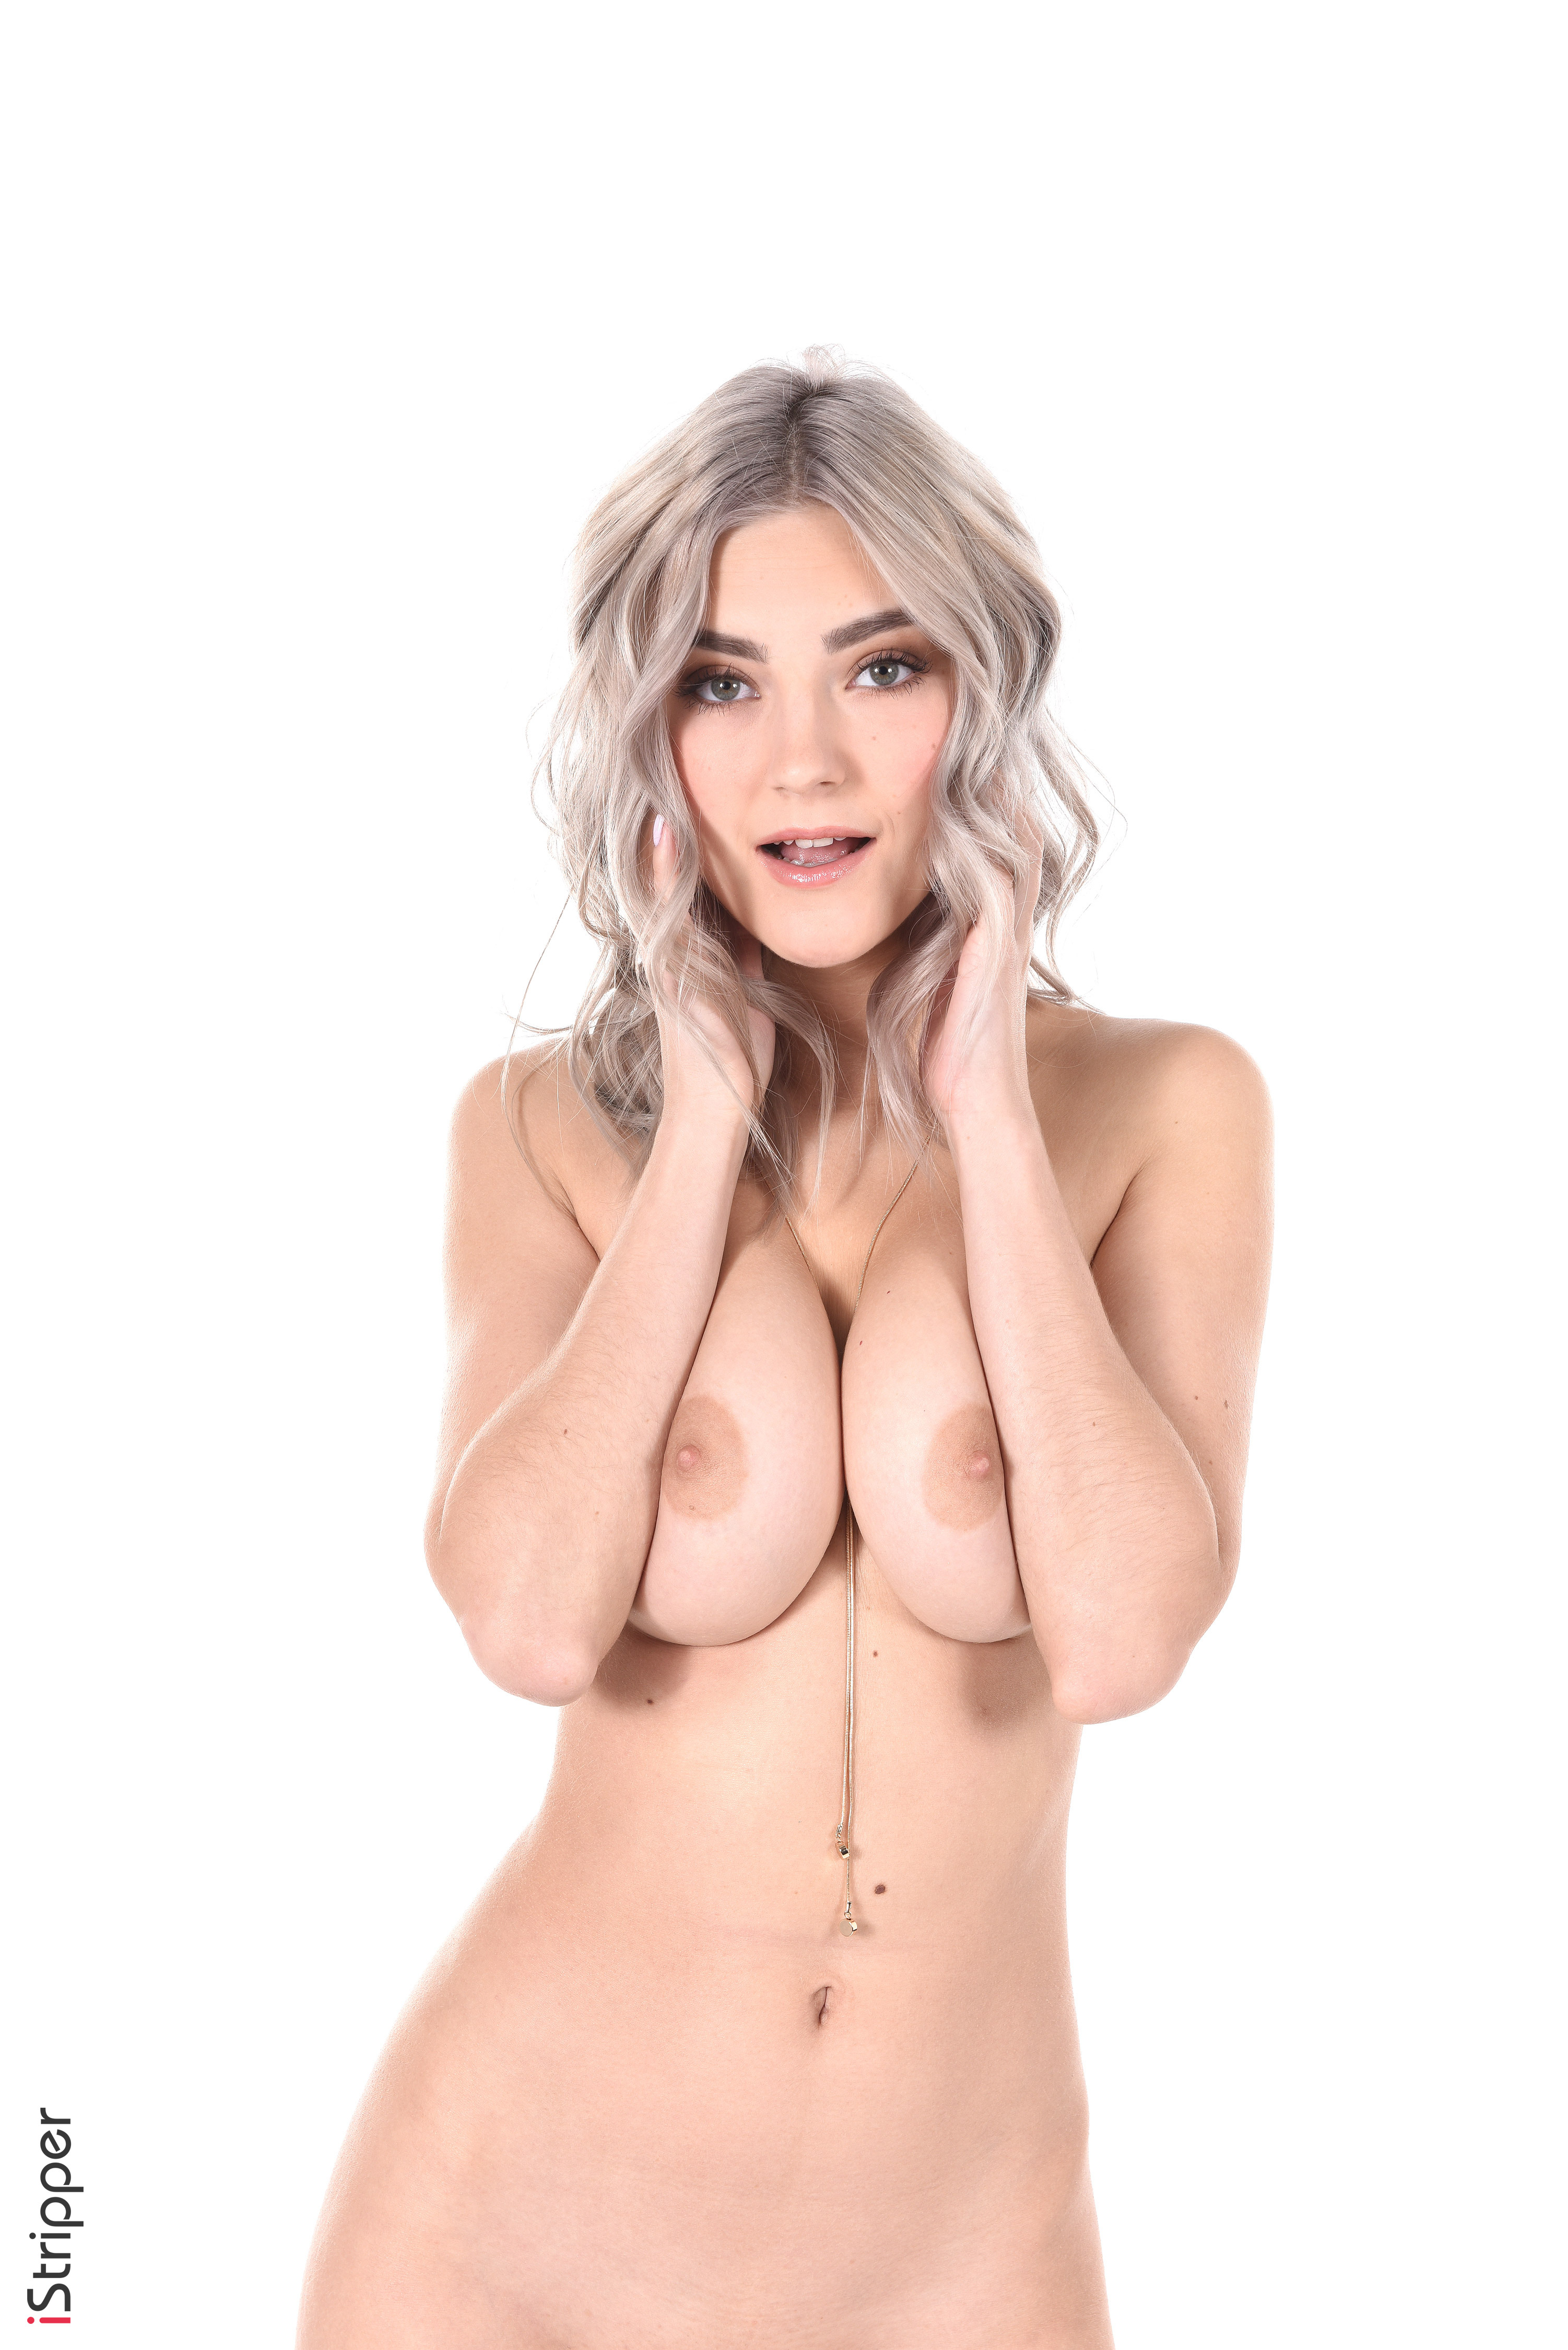 hd wallpapers naked girls